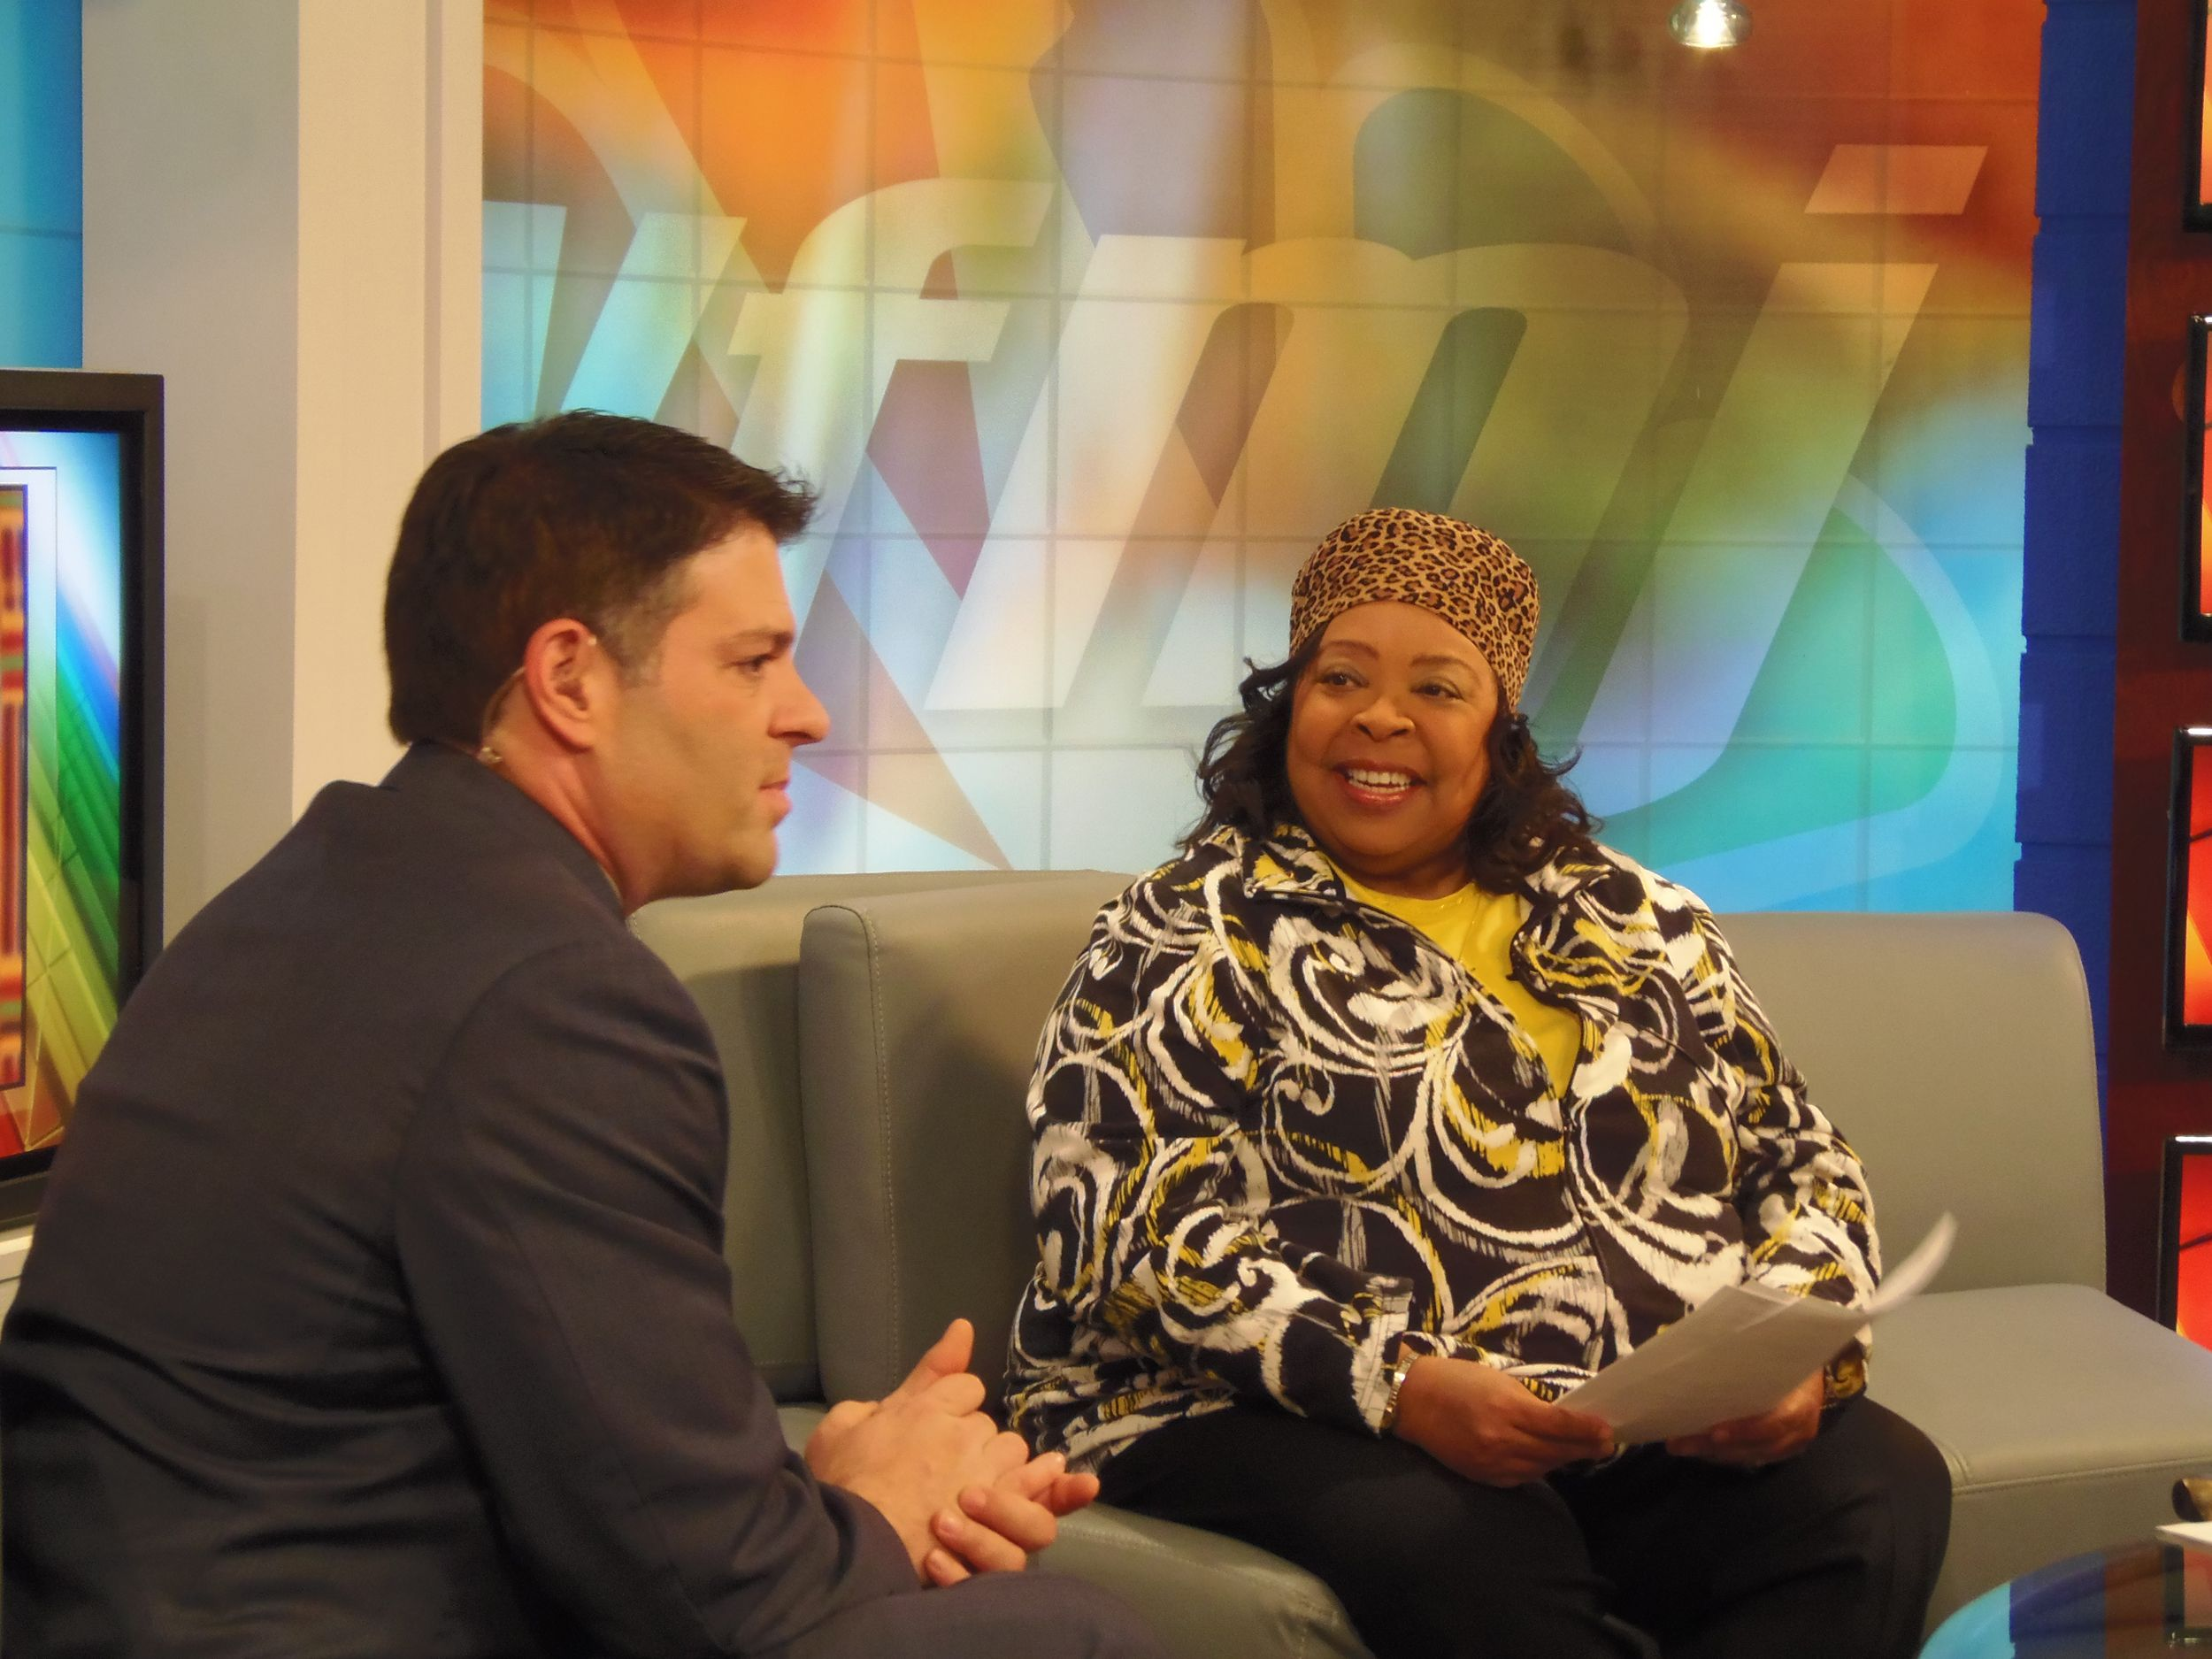 WFMJ Community Relations Director Madonna Chism Pinkard was